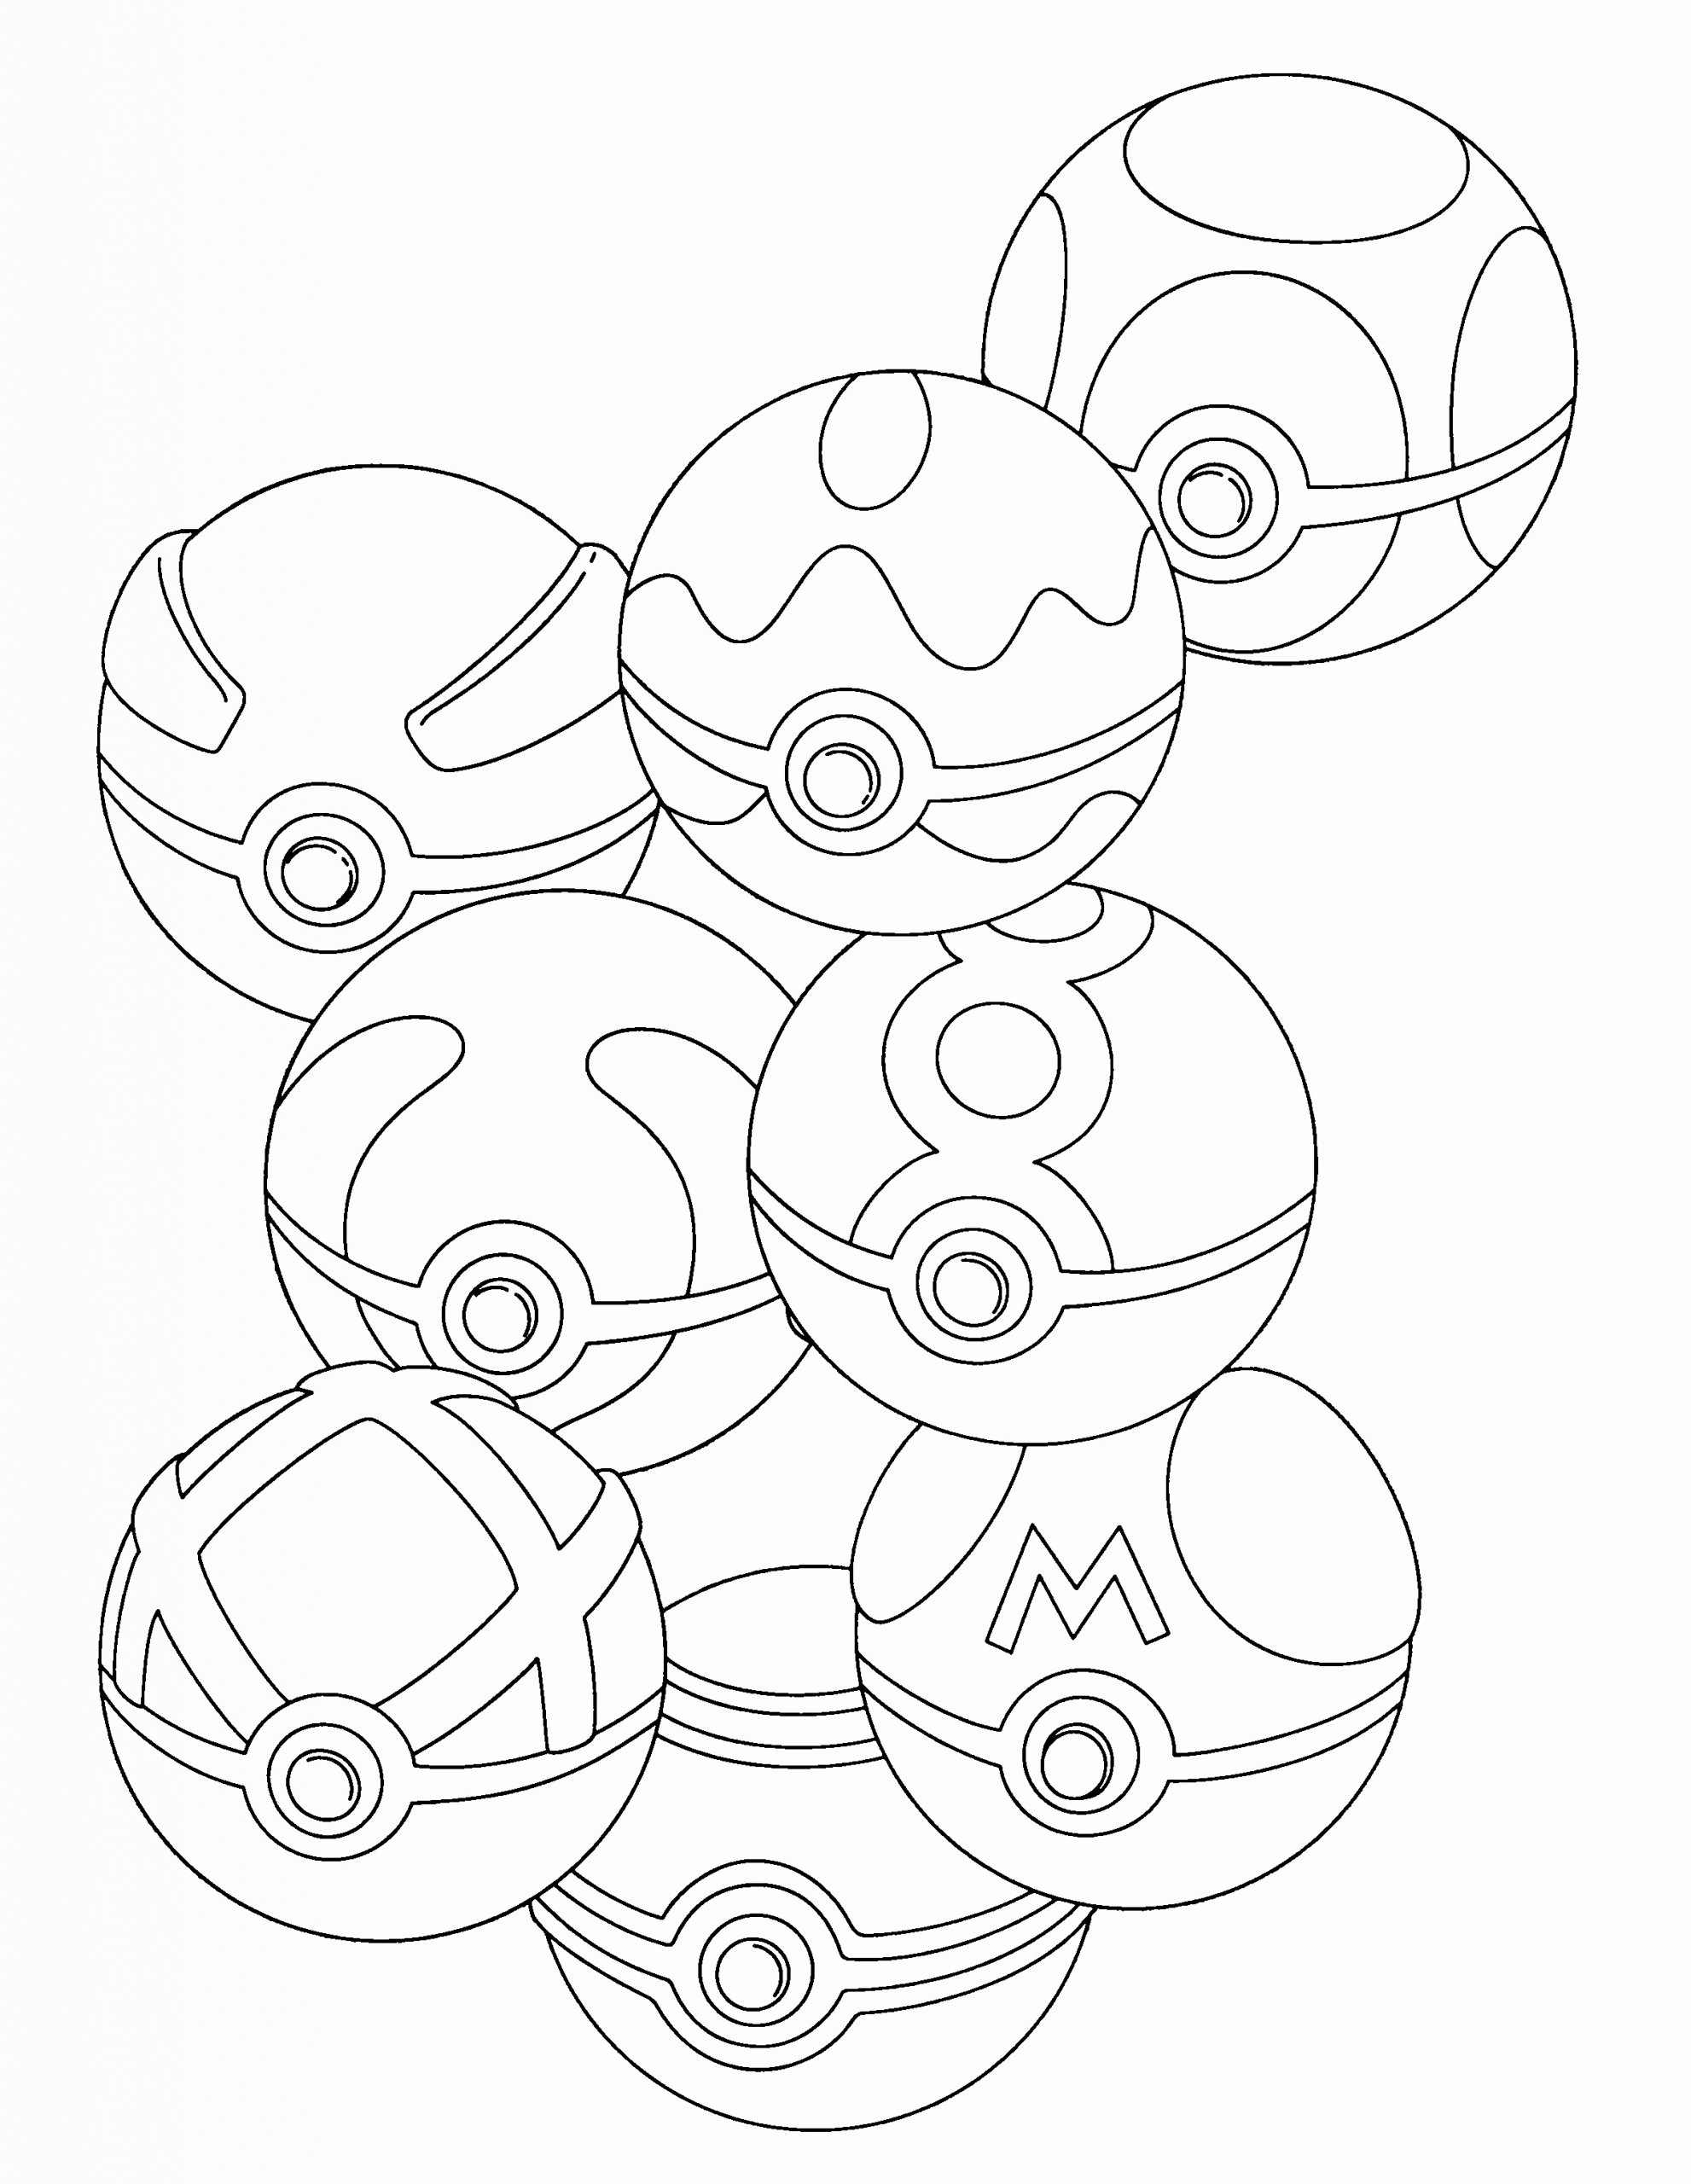 32 Pokemon Ball Coloring Page in 2020 Pokemon coloring